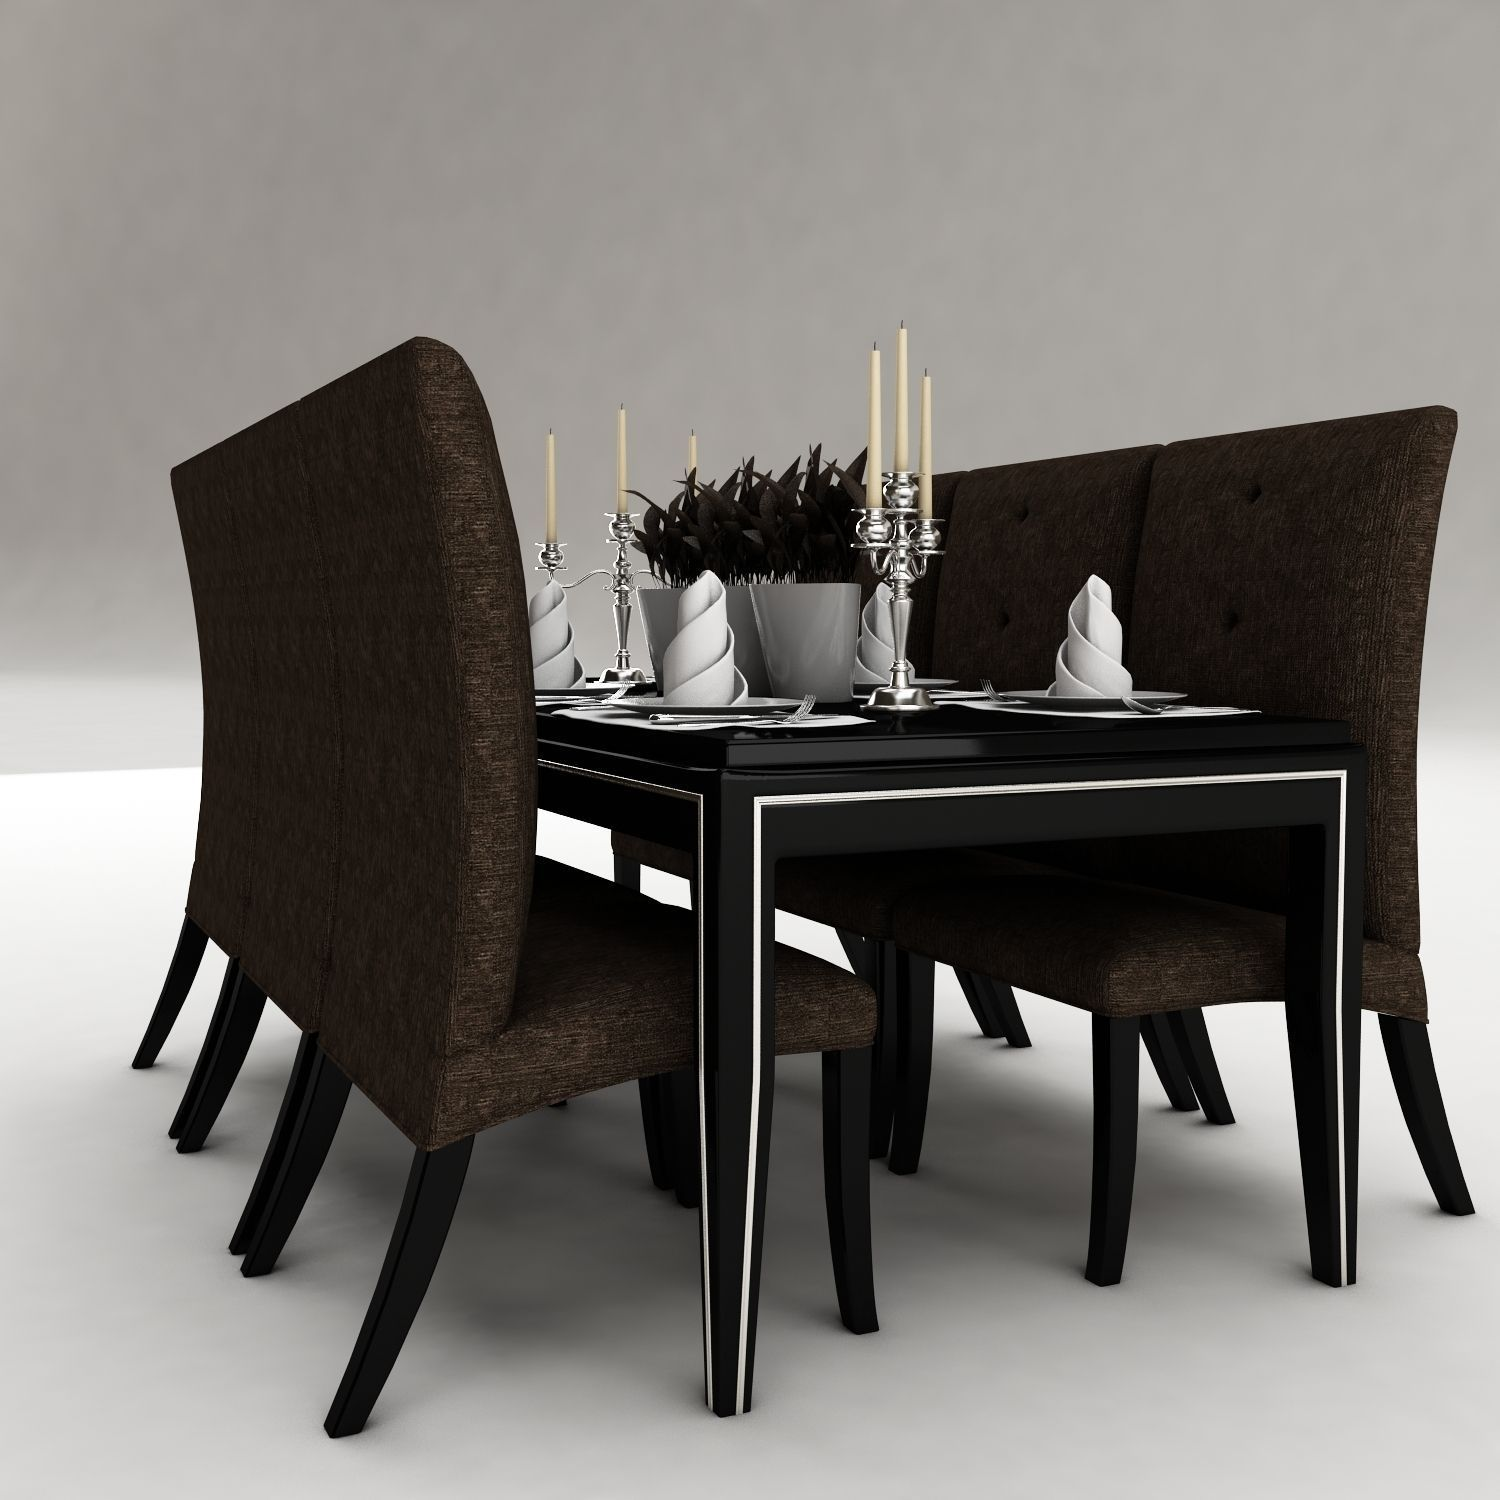 Dining table 48 3d model max obj 3ds fbx for Dining table latest model